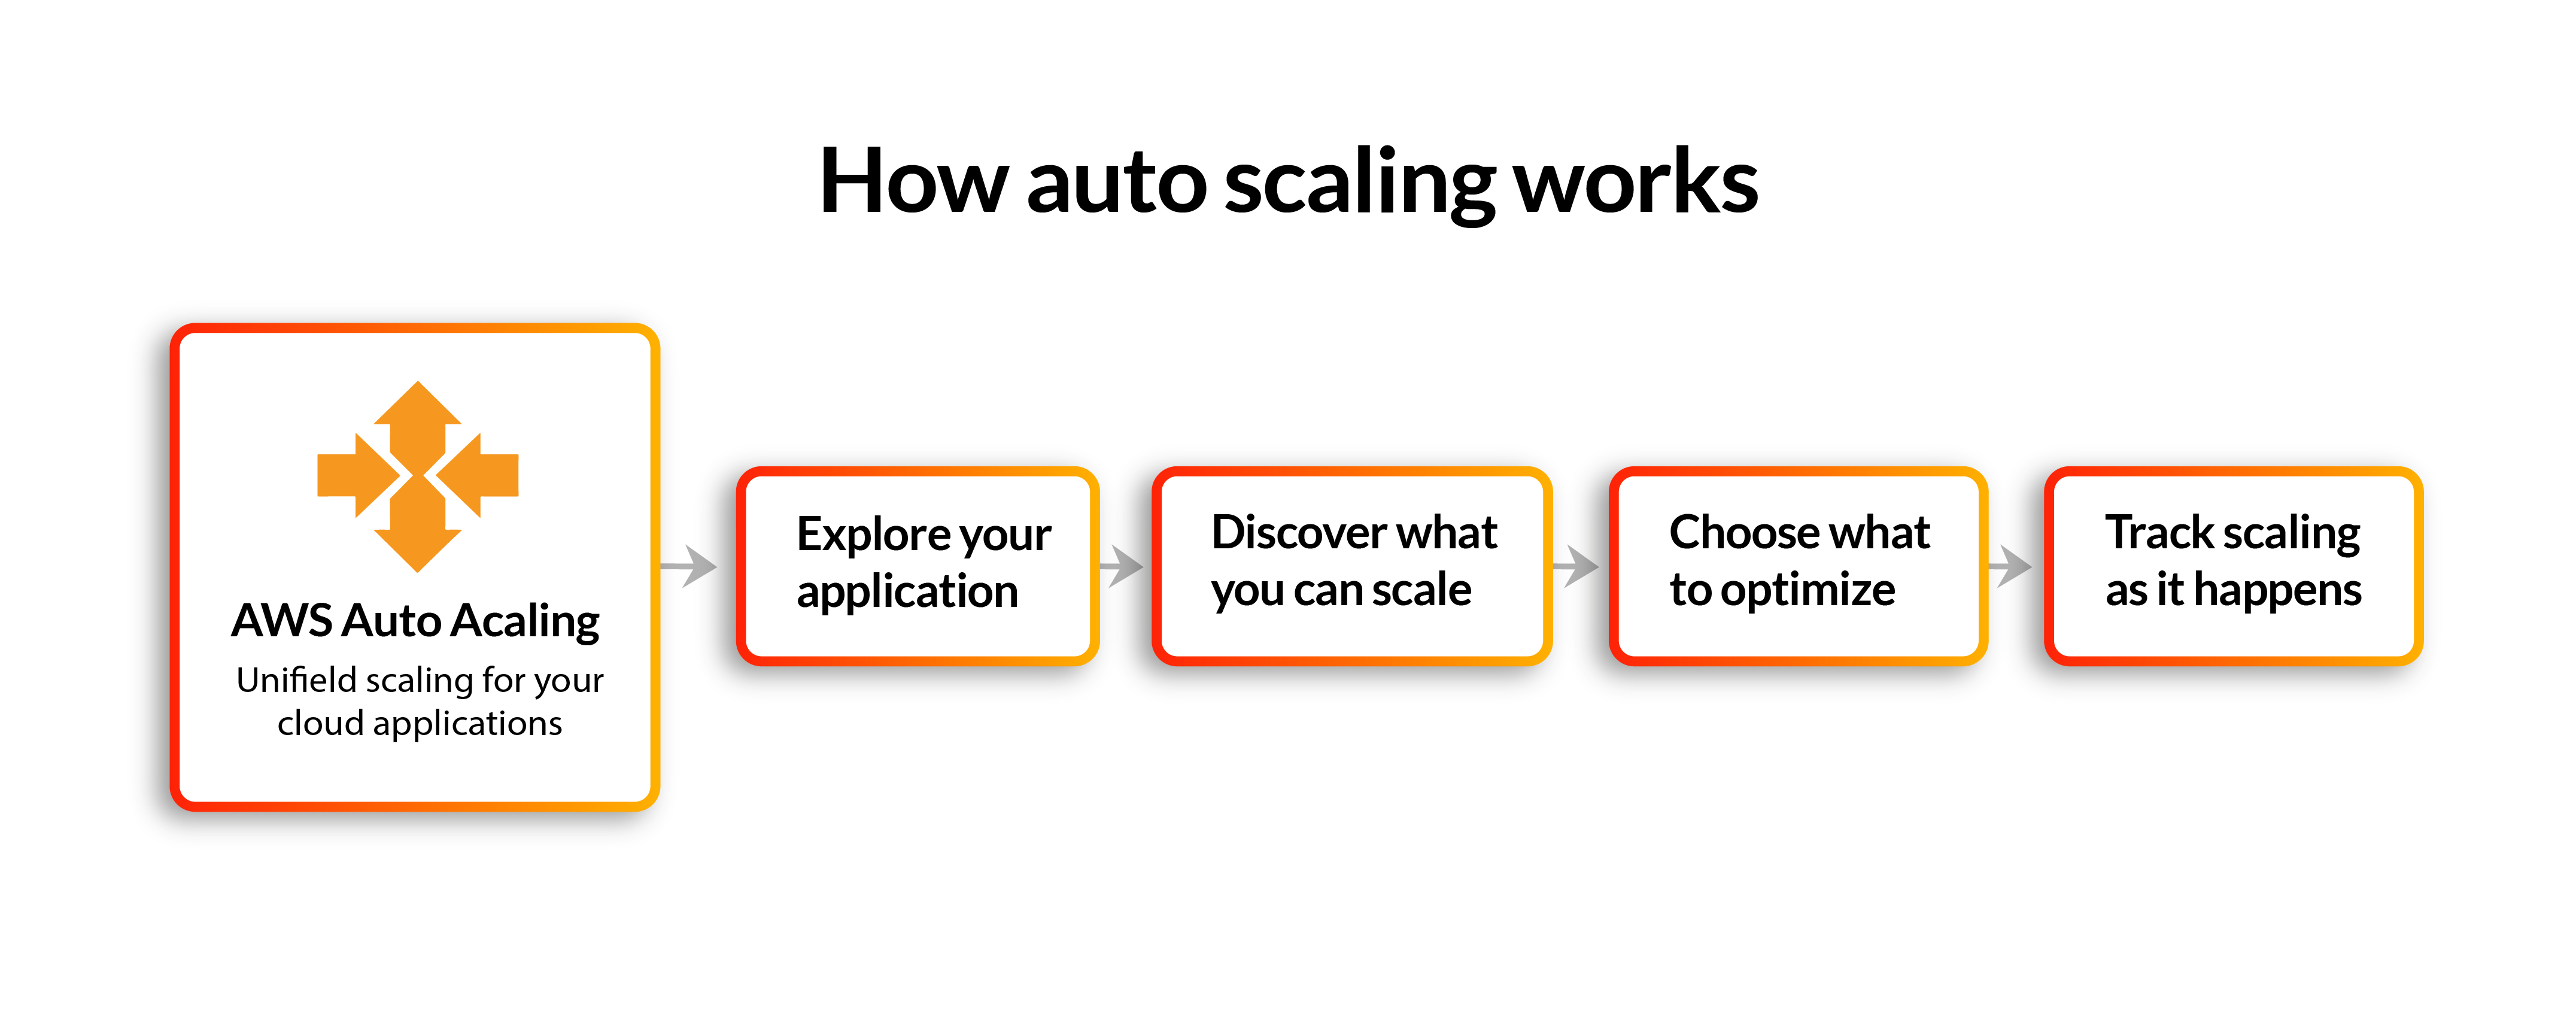 How Auto Scaling works